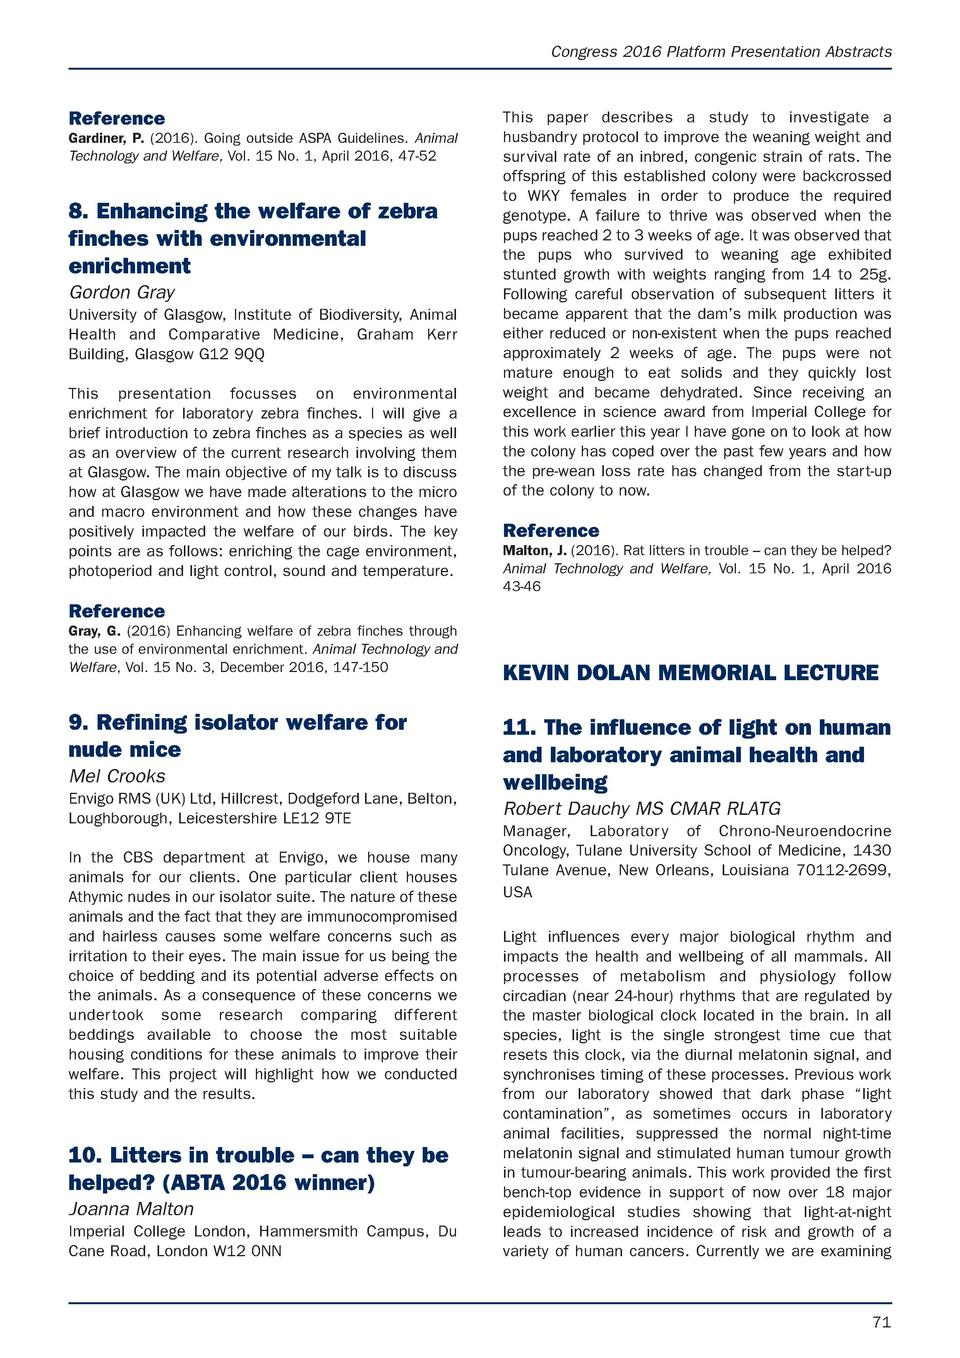 APRIL latest.e S Animal Technology and Welfare  9 3 17  07 54  Page 71  Congress 2016 Platform Presentation Abstracts  Ref...